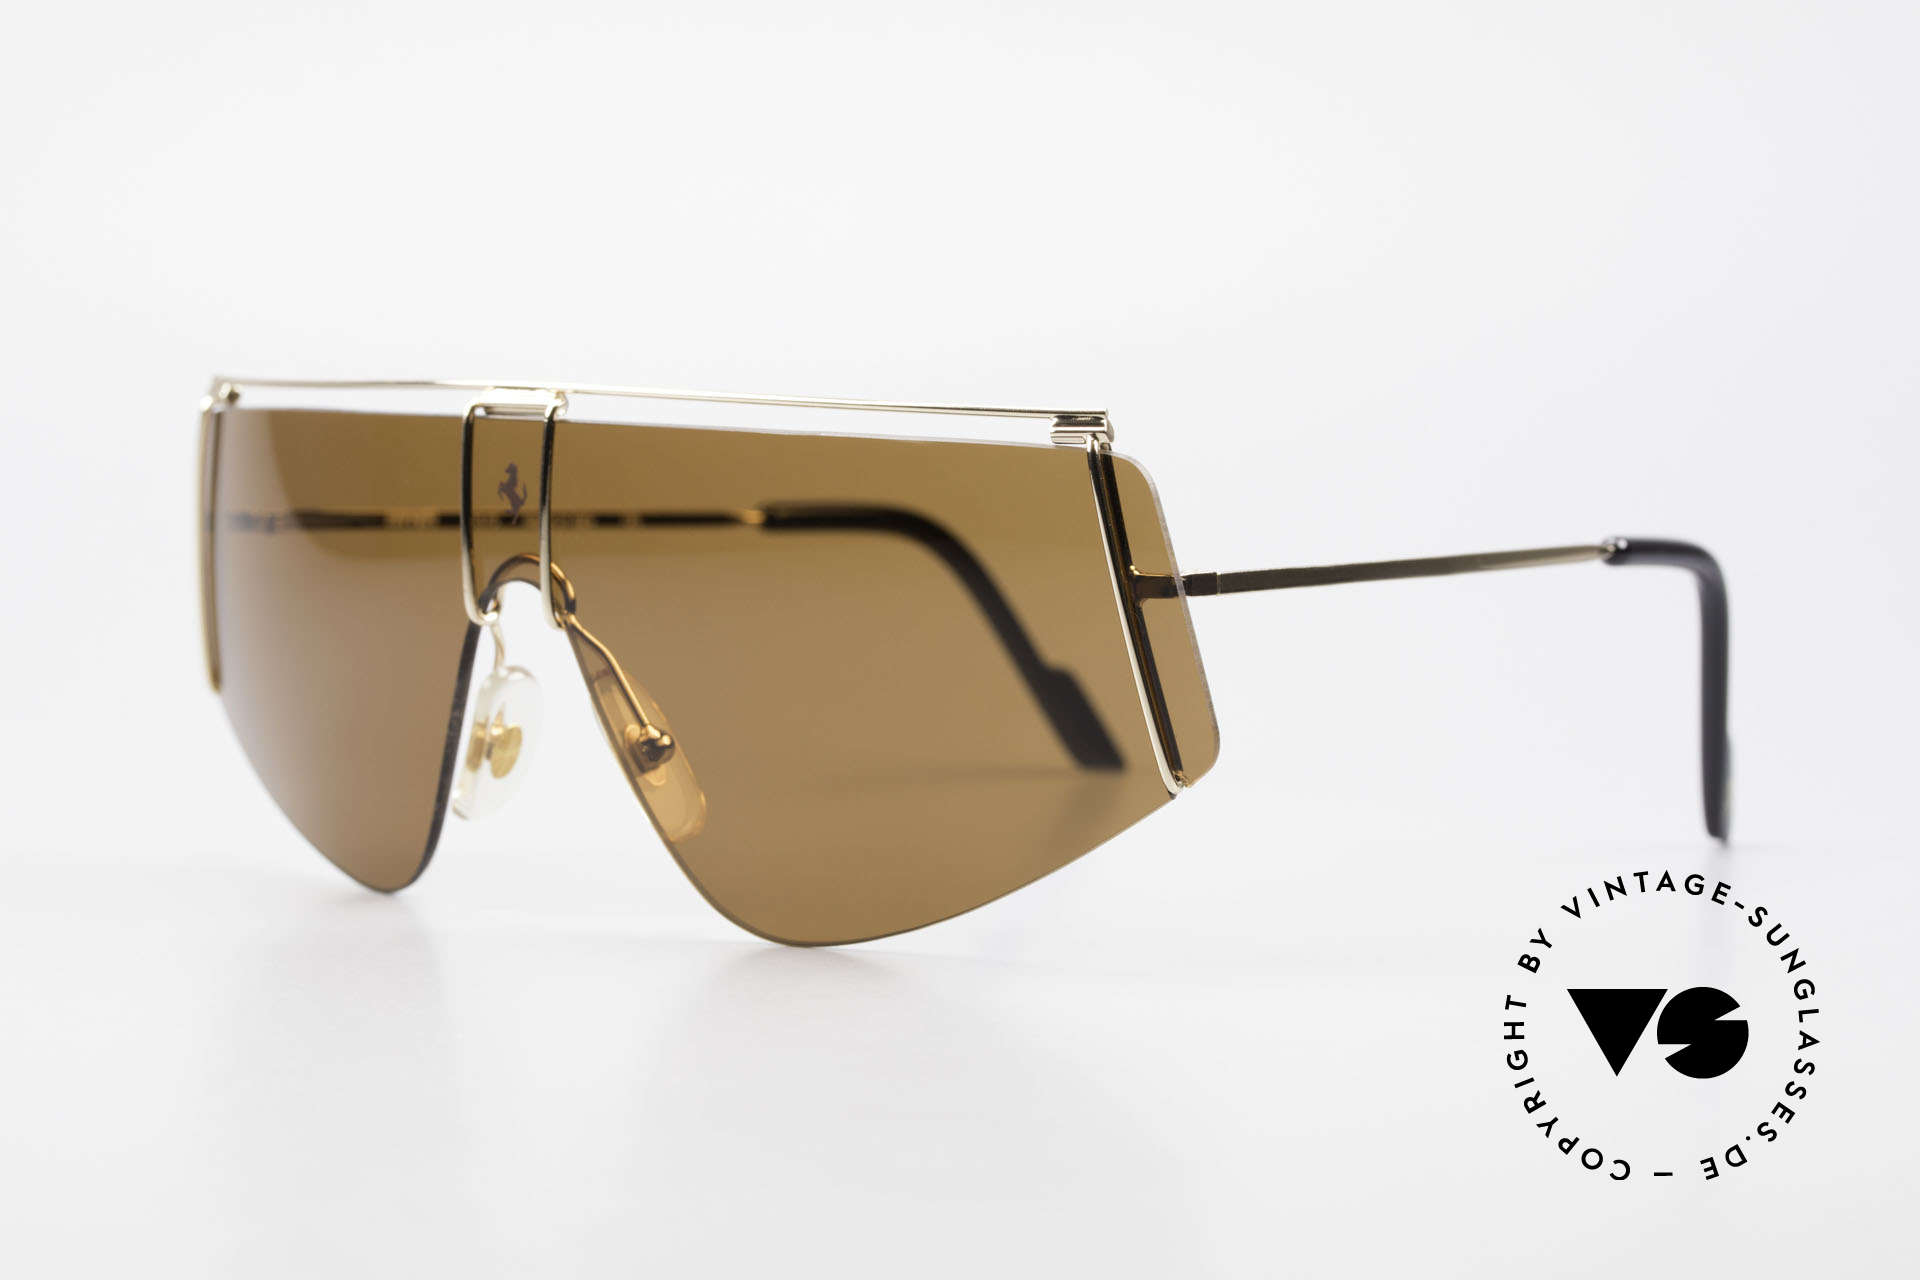 Ferrari F15/S Luxury Sports Sunglasses 90's, panorama view design with only one single lens, Made for Men and Women